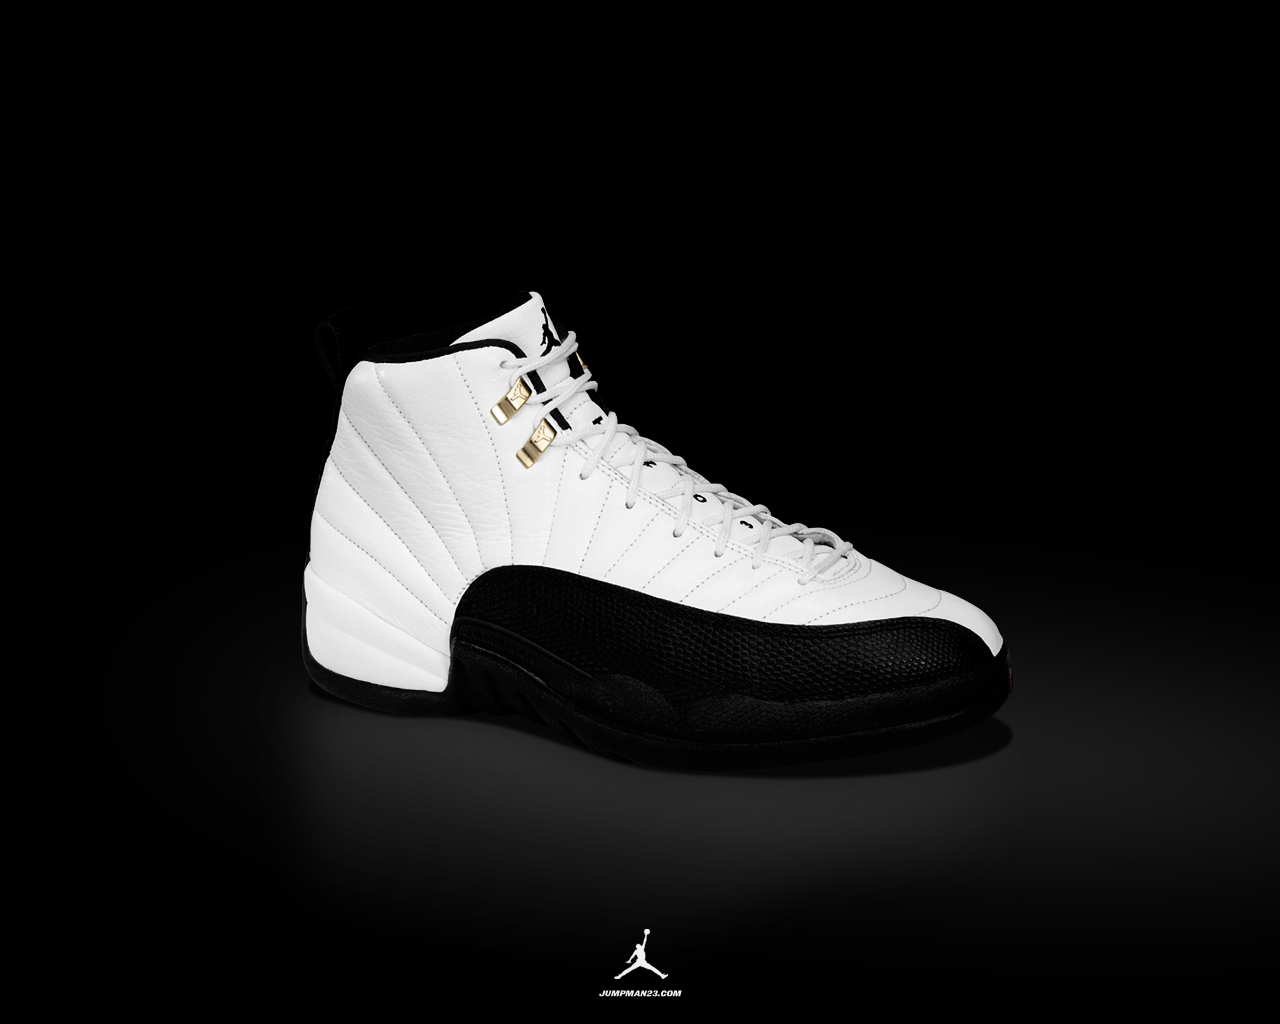 Air Jordan Sneaker Wallpaper